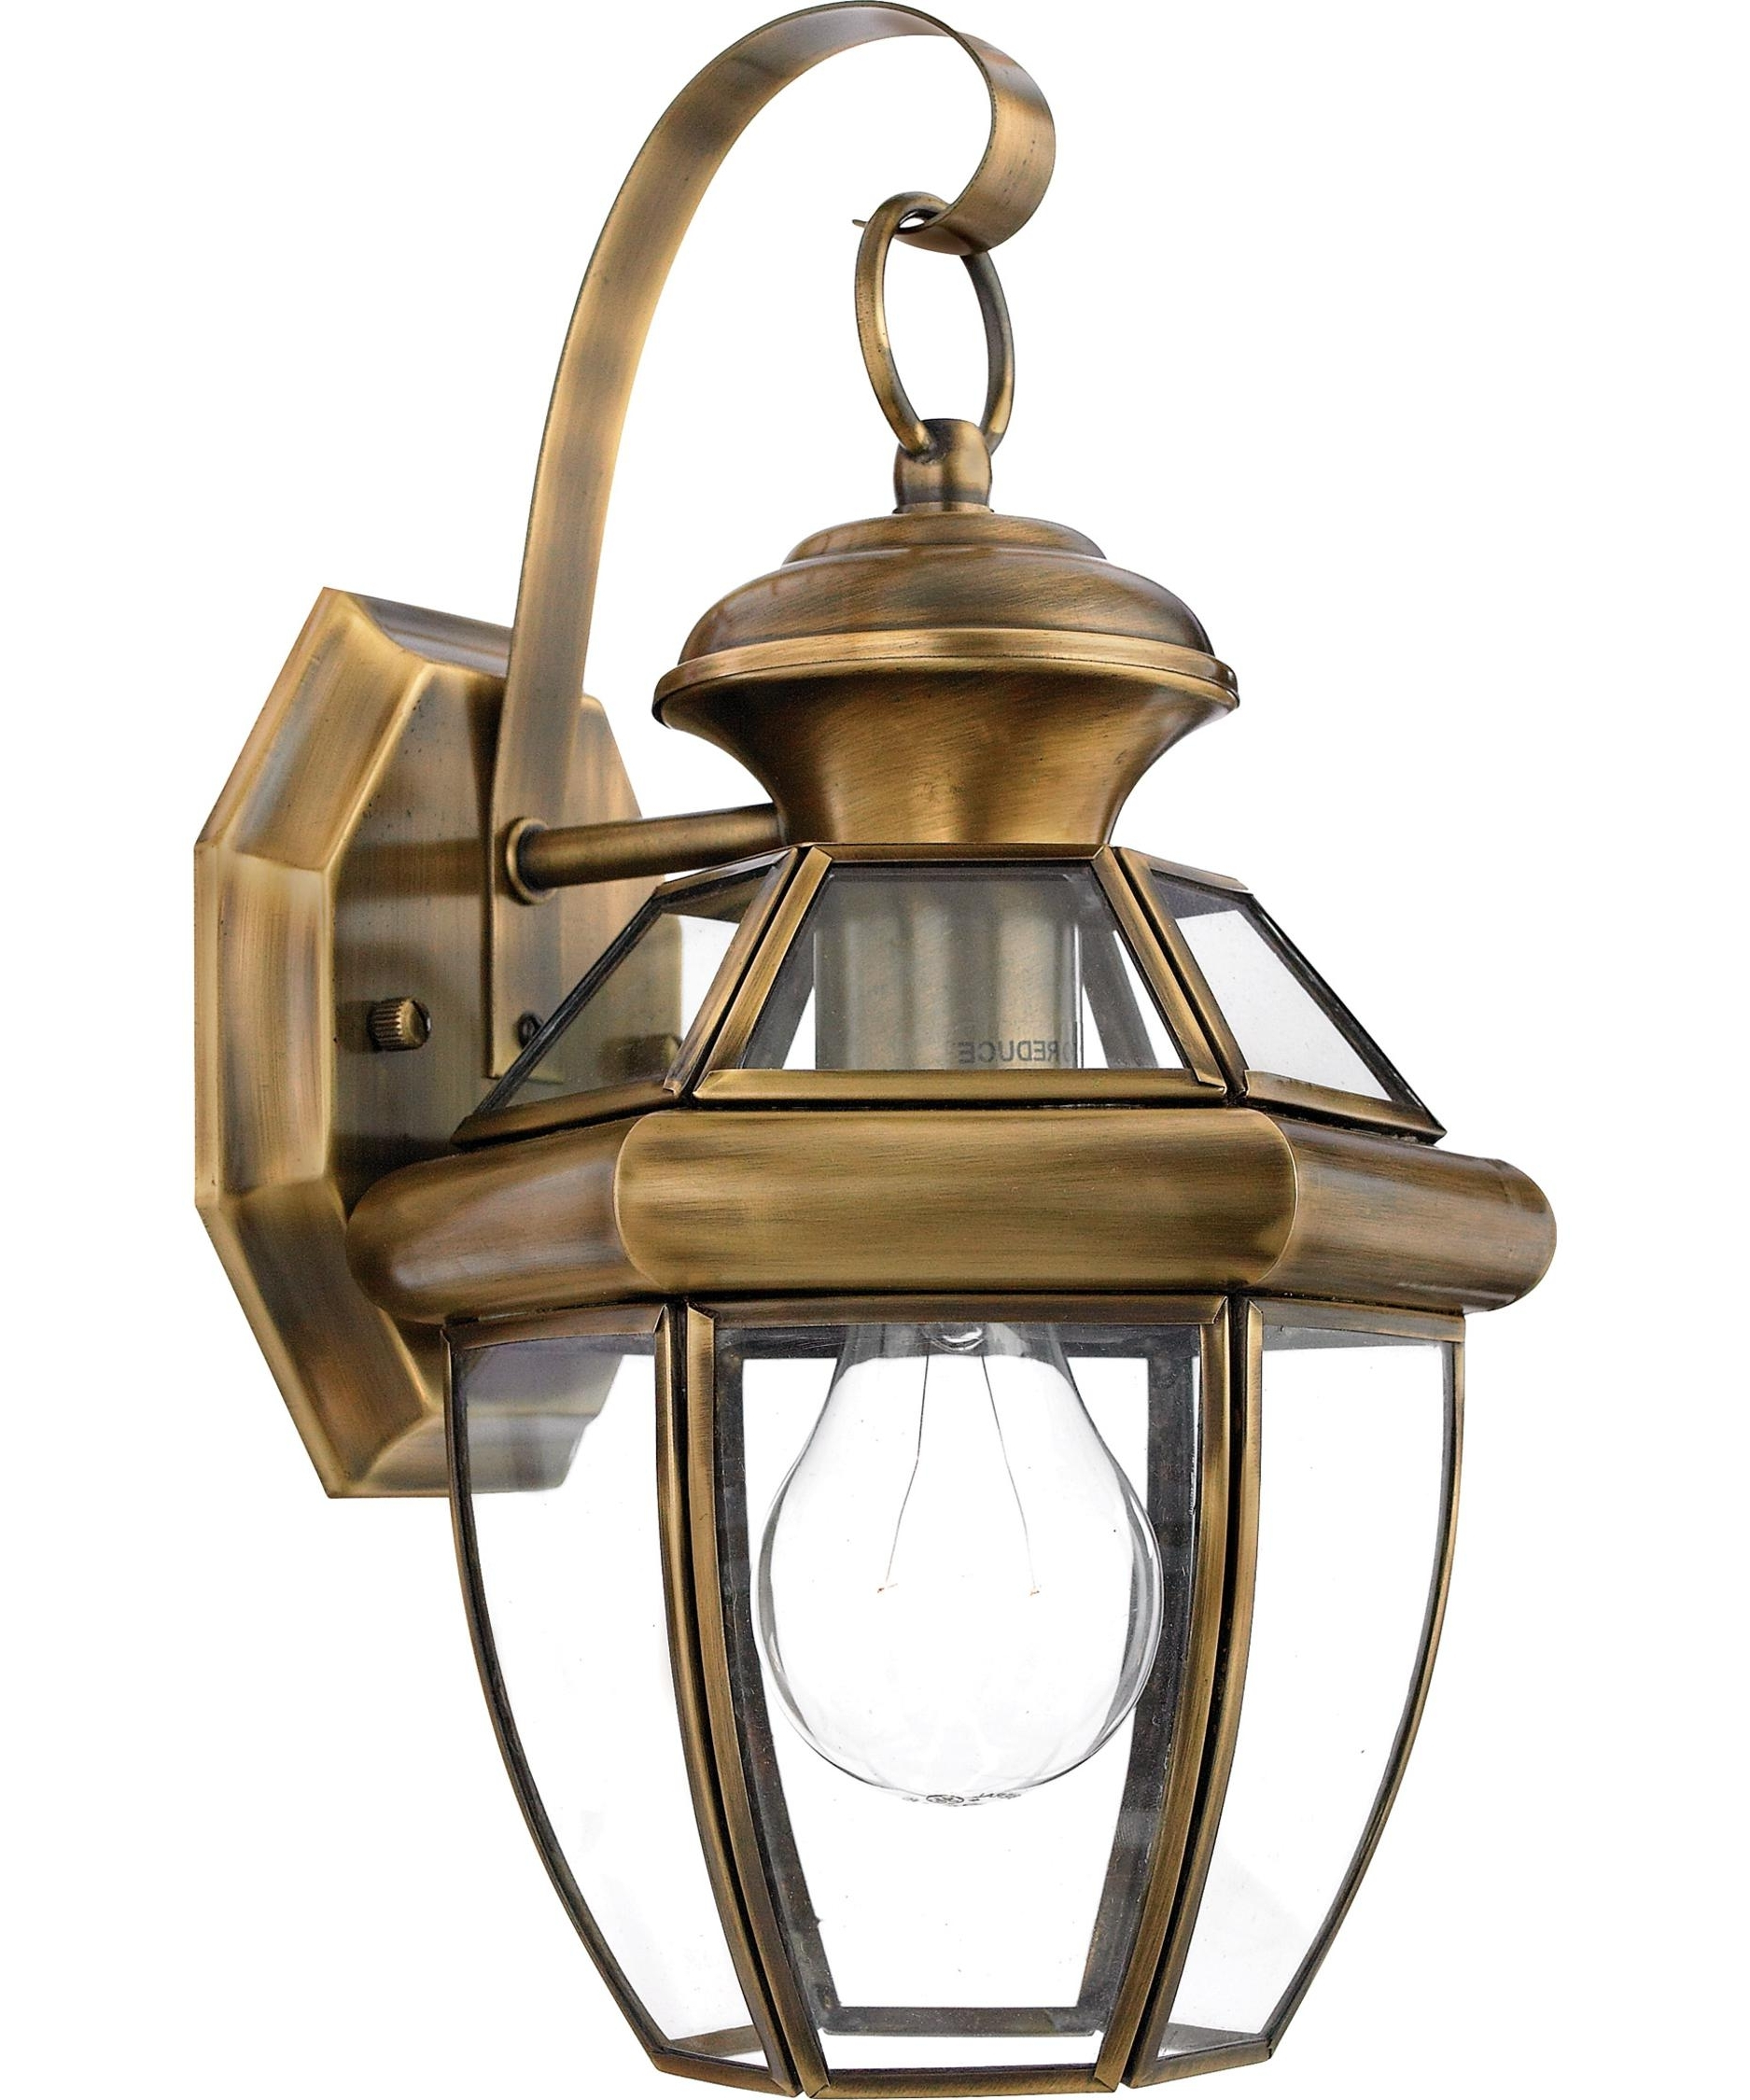 Best And Newest Quoizel Ny8315 Newbury 7 Inch Wide 1 Light Outdoor Wall Light Intended For Antique Brass Outdoor Lighting (View 5 of 20)